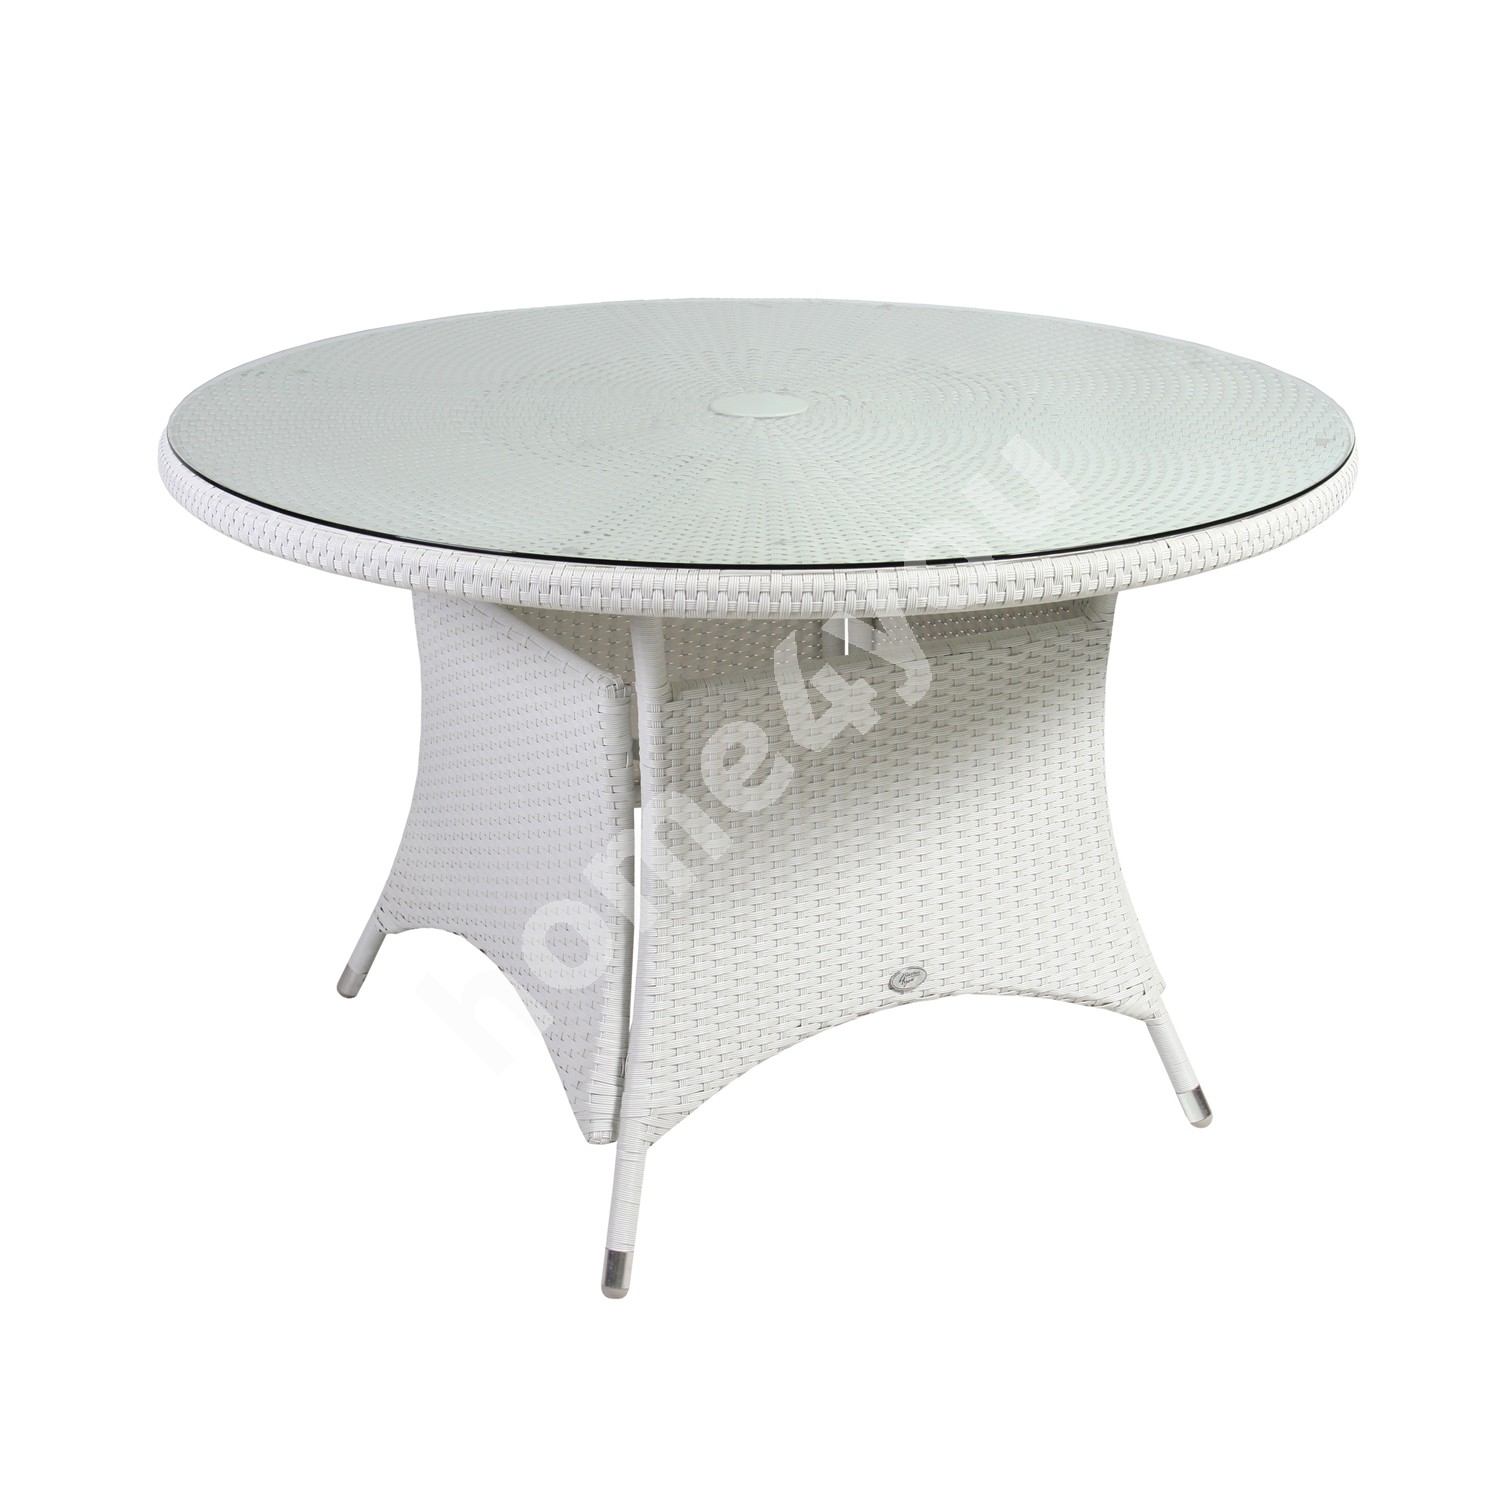 Table WICKER D123,5xH74,5cm, table top: glass, aluminum frame with plastic wicker, color: white